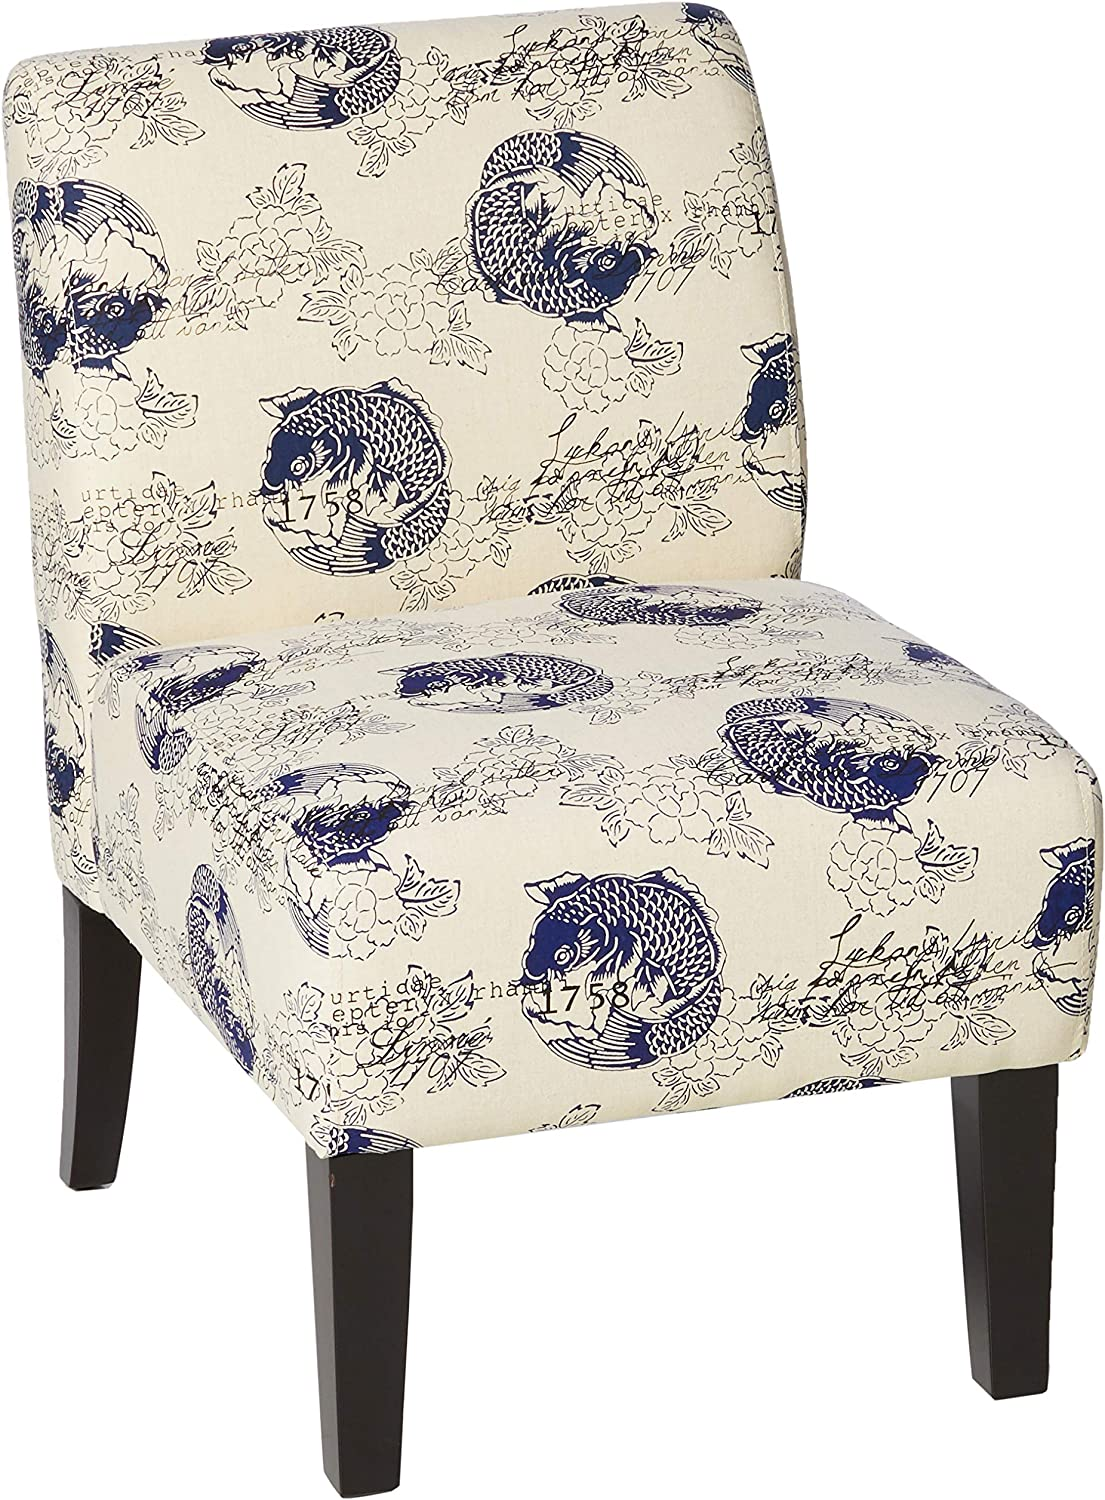 ACME Ollano Accent Chair - 59439 - Pattern Fabric